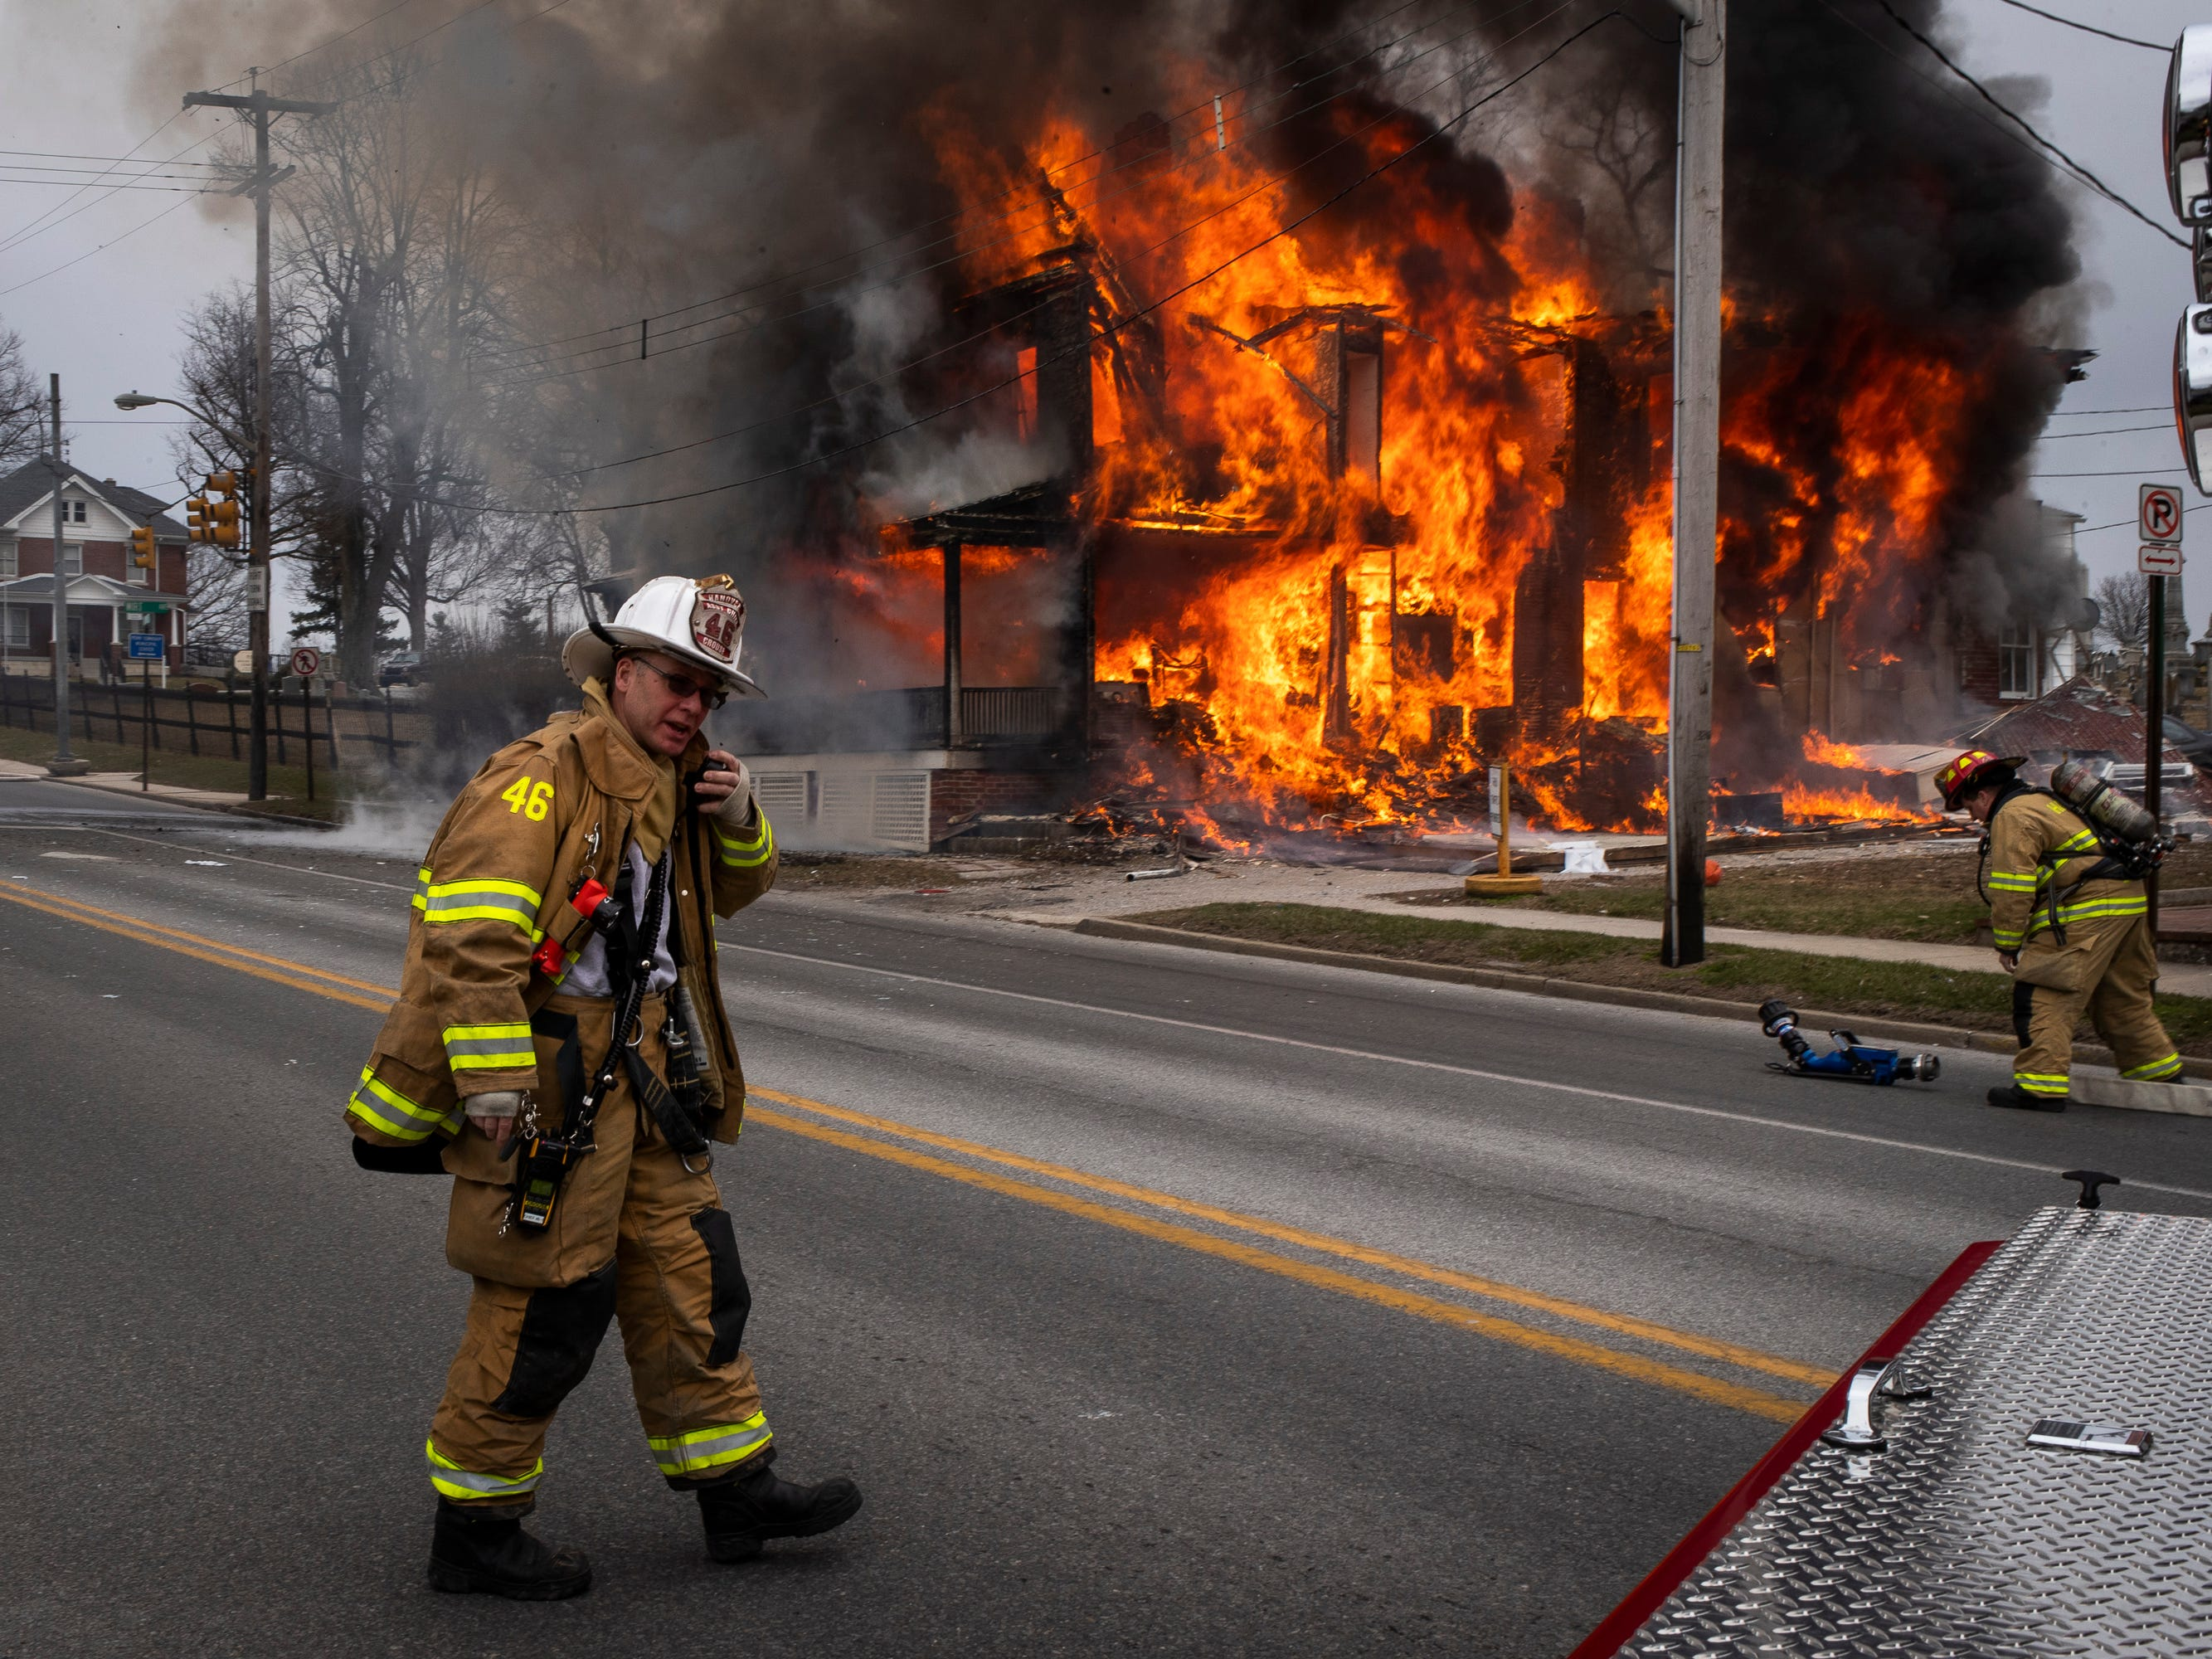 Assistant Chief Andrew Crouse assumes initial command at the scene of a third-alarm house explosion on the 600 block of Baltimore street, Saturday, March 17, 2018 in Hanover. A critically burned man from inside the house was airlifted from the scene of the explosion in a medical helicopter, but later succumbed to his injuries.